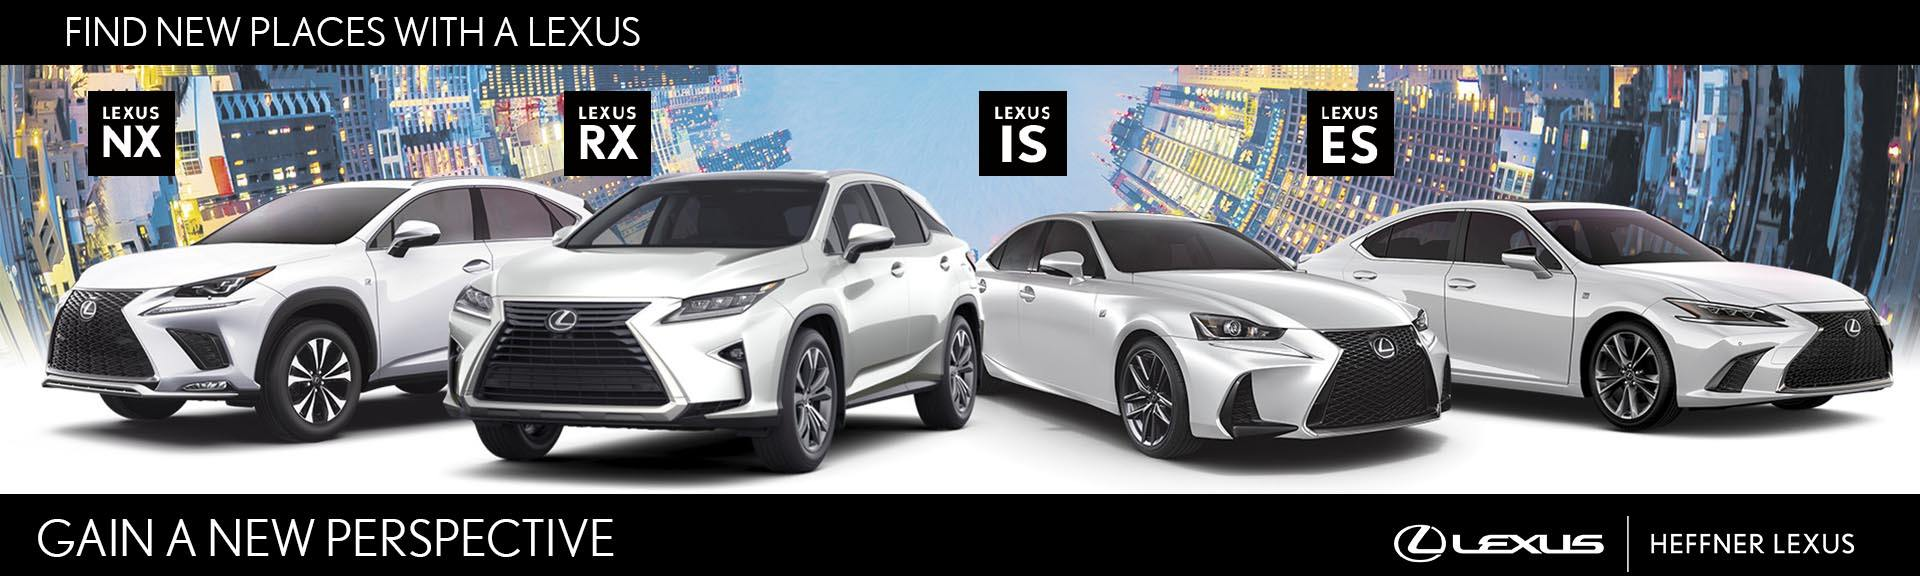 Gain a new perspective with Heffner Lexus' August promotions.